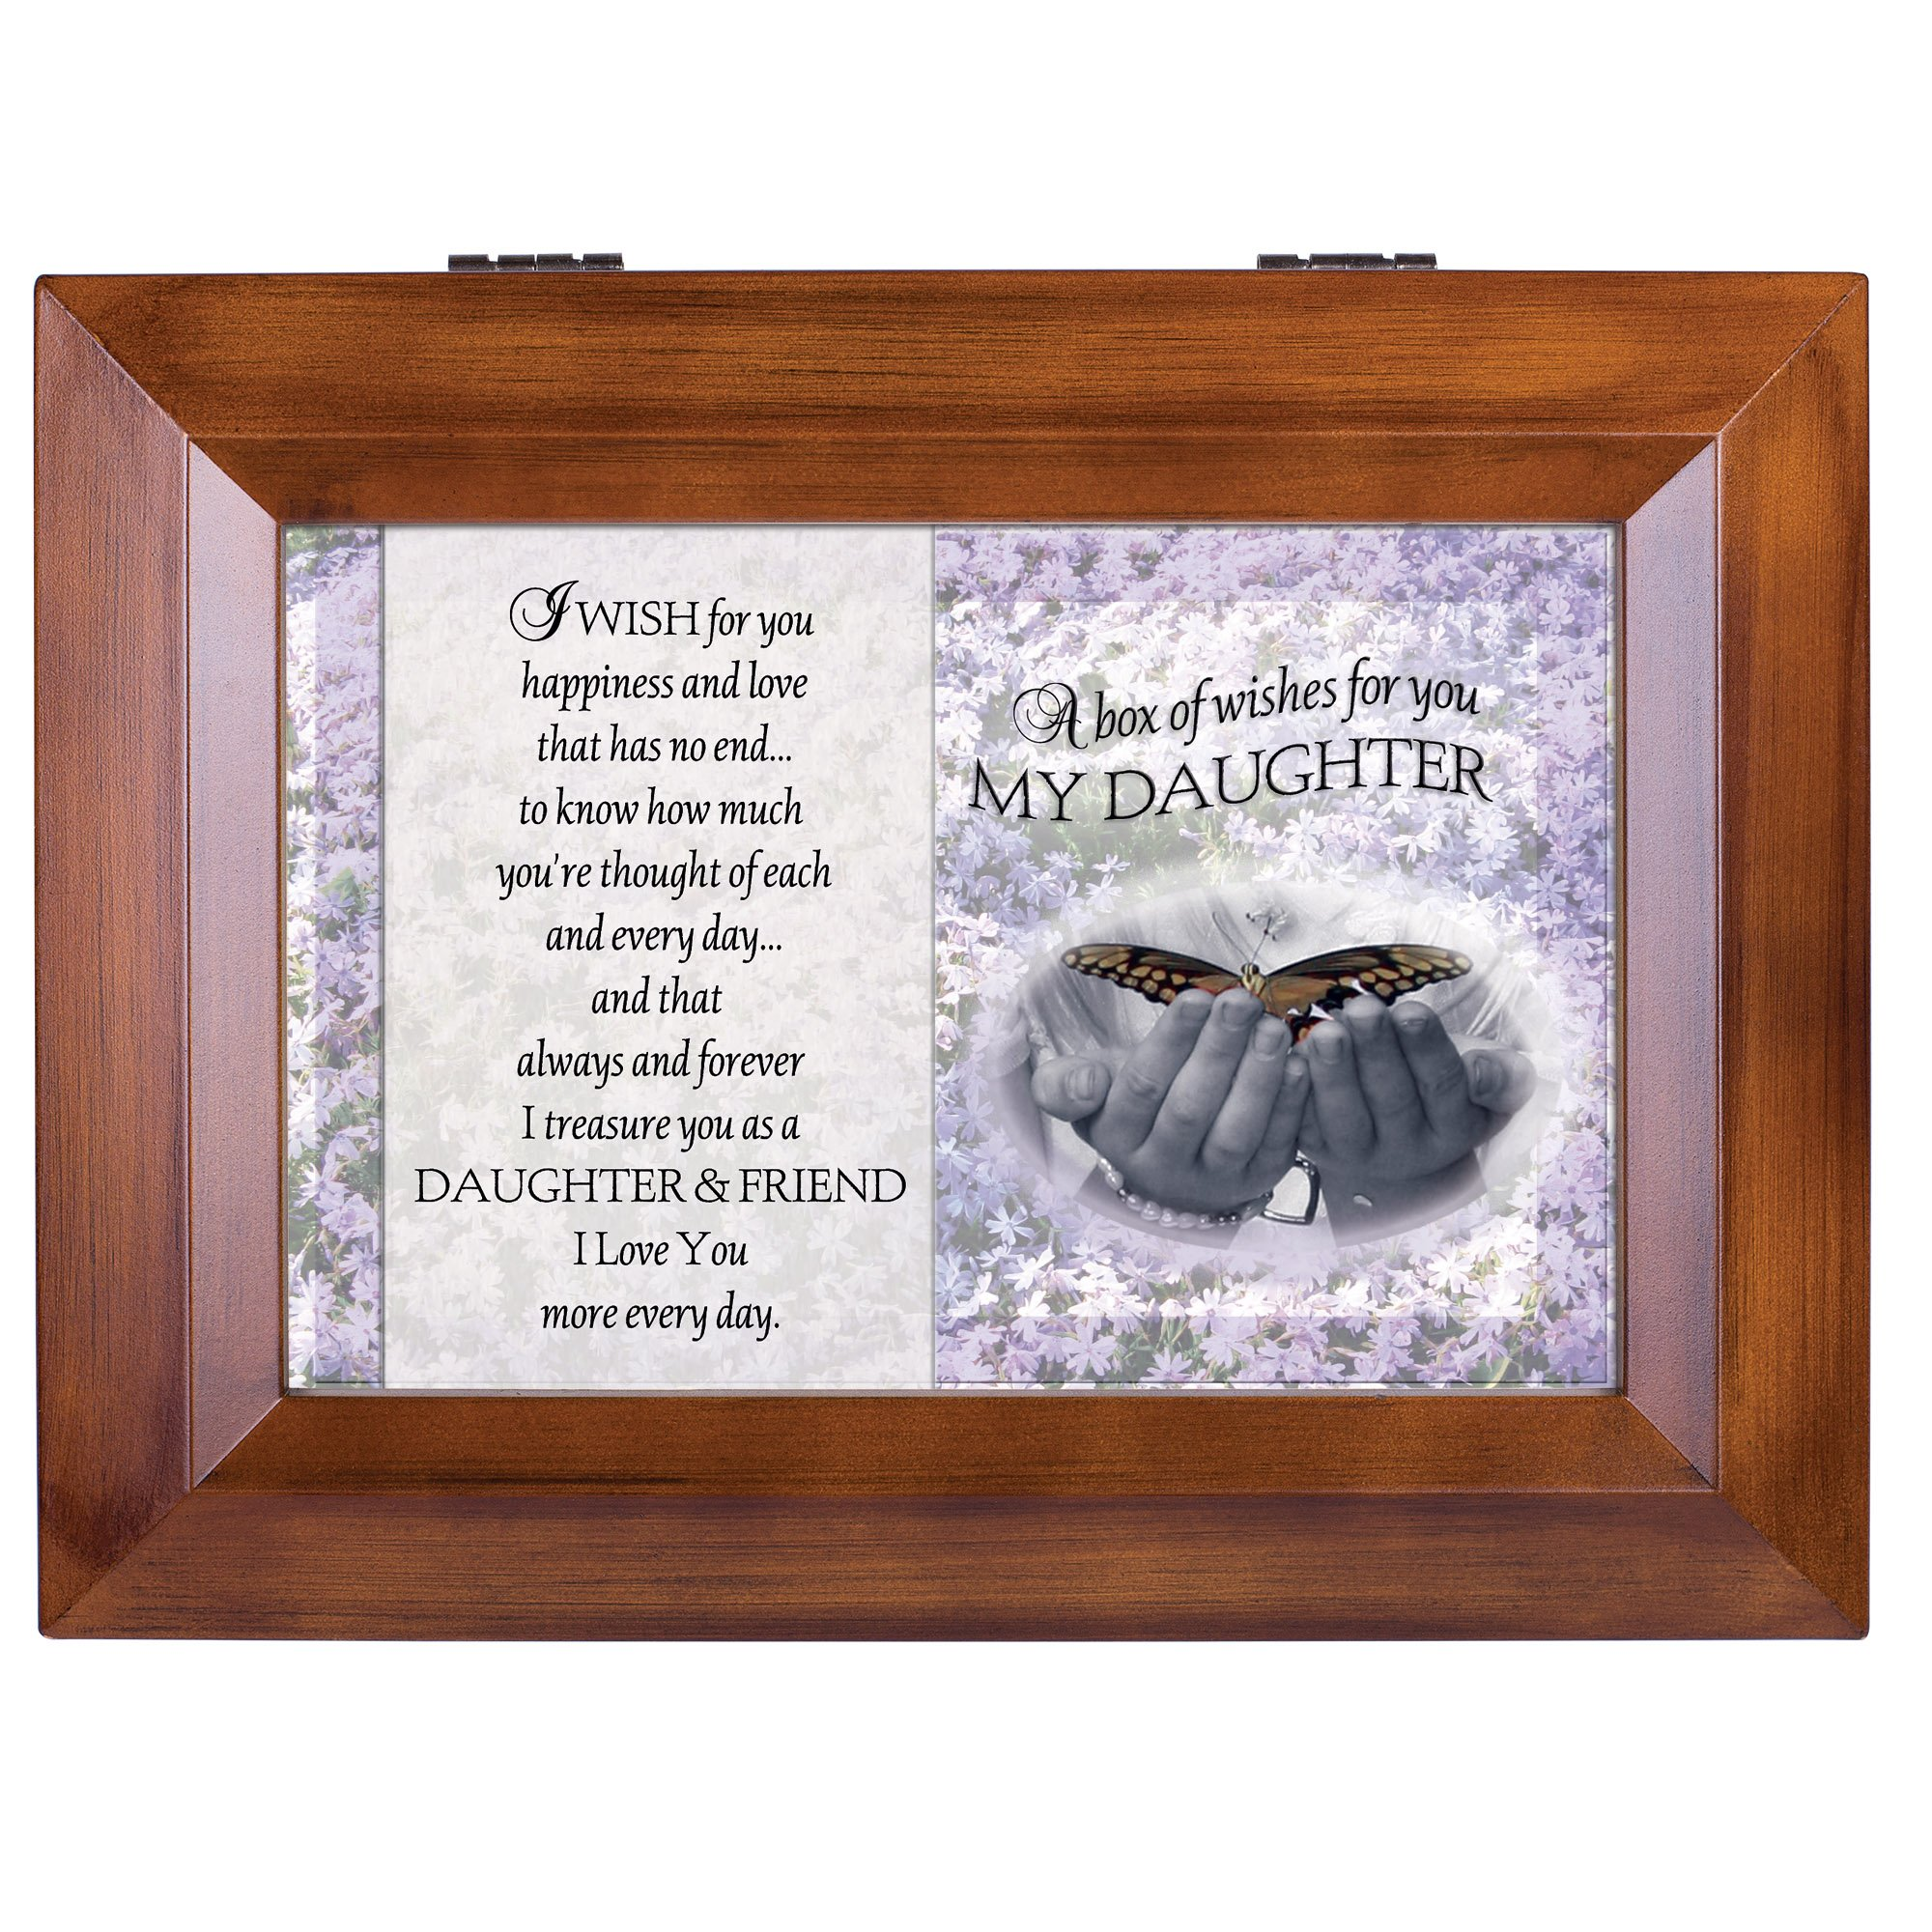 Cottage Garden My Daughter Dark Wood Finish Jewelry Music Box - Plays Tune You Are My Sunshine by Cottage Garden (Image #3)